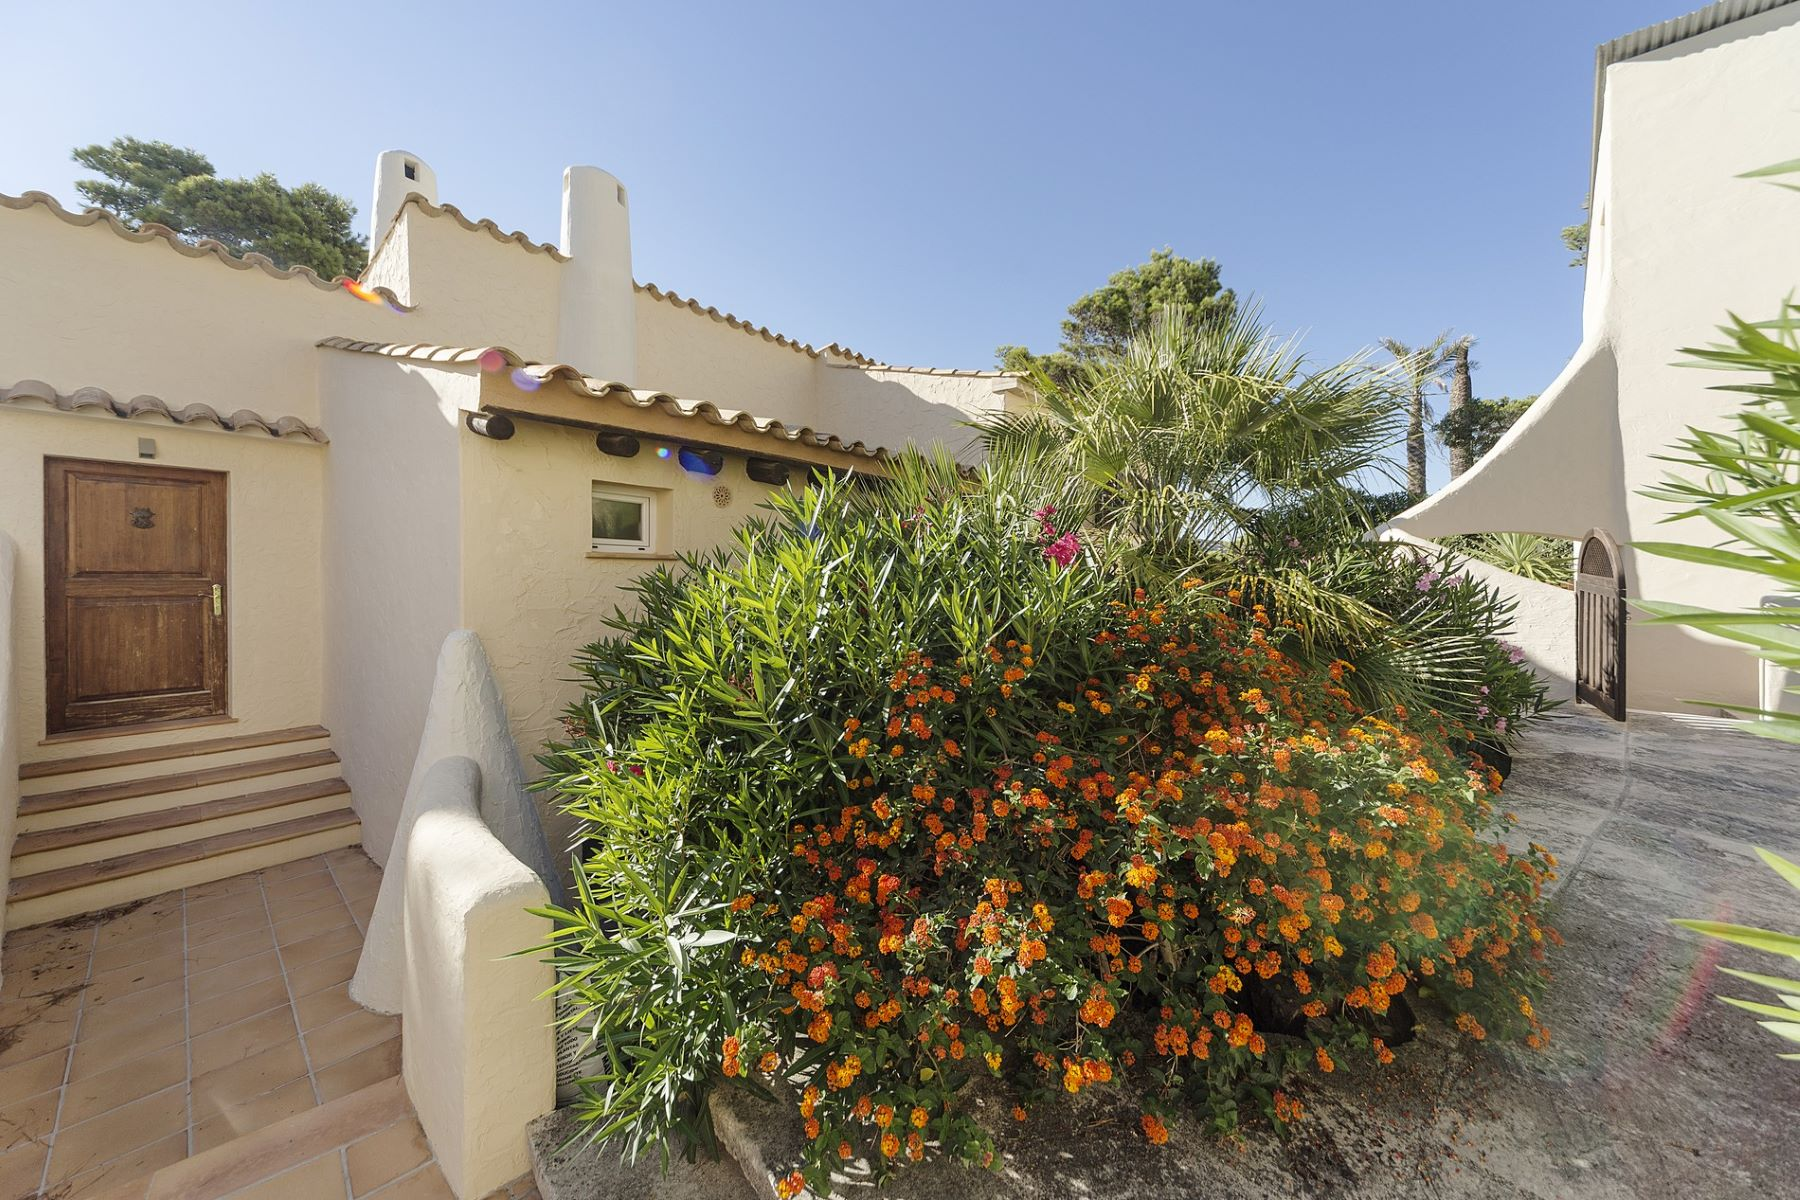 Single Family Home for Sale at Wonderful apartment with views over Dragonera Other Balearic Islands, Balearic Islands, Spain